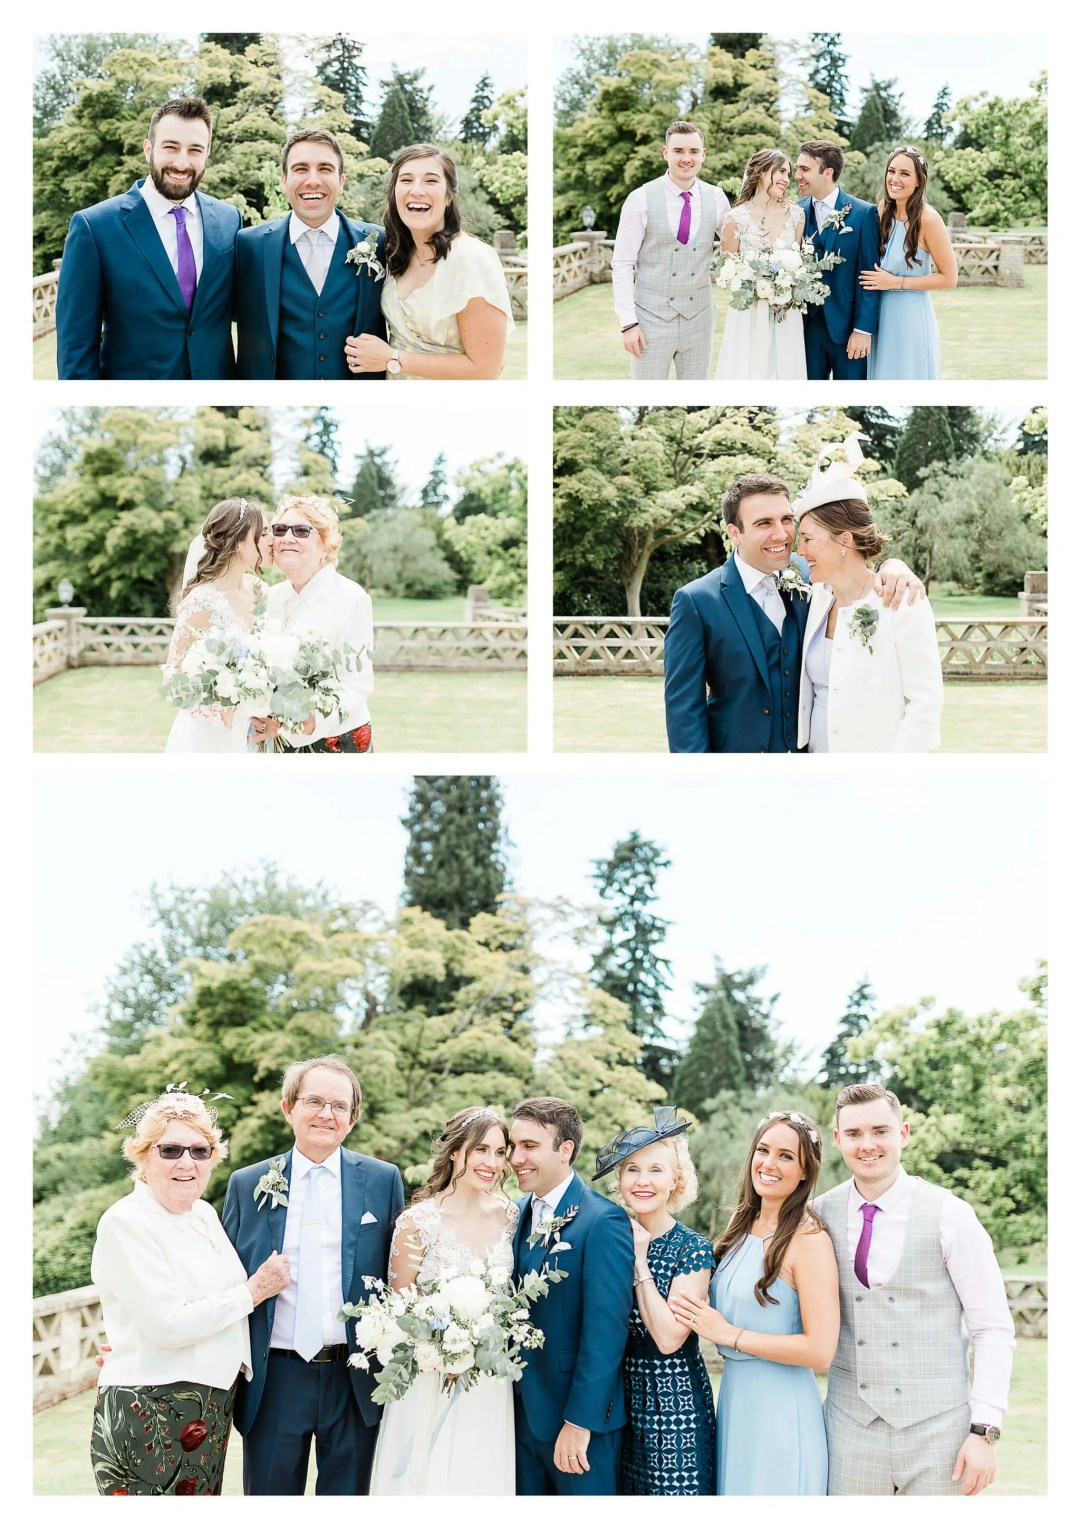 Family portraits at Buxted Park Hotel wedding | Uckfield photographer